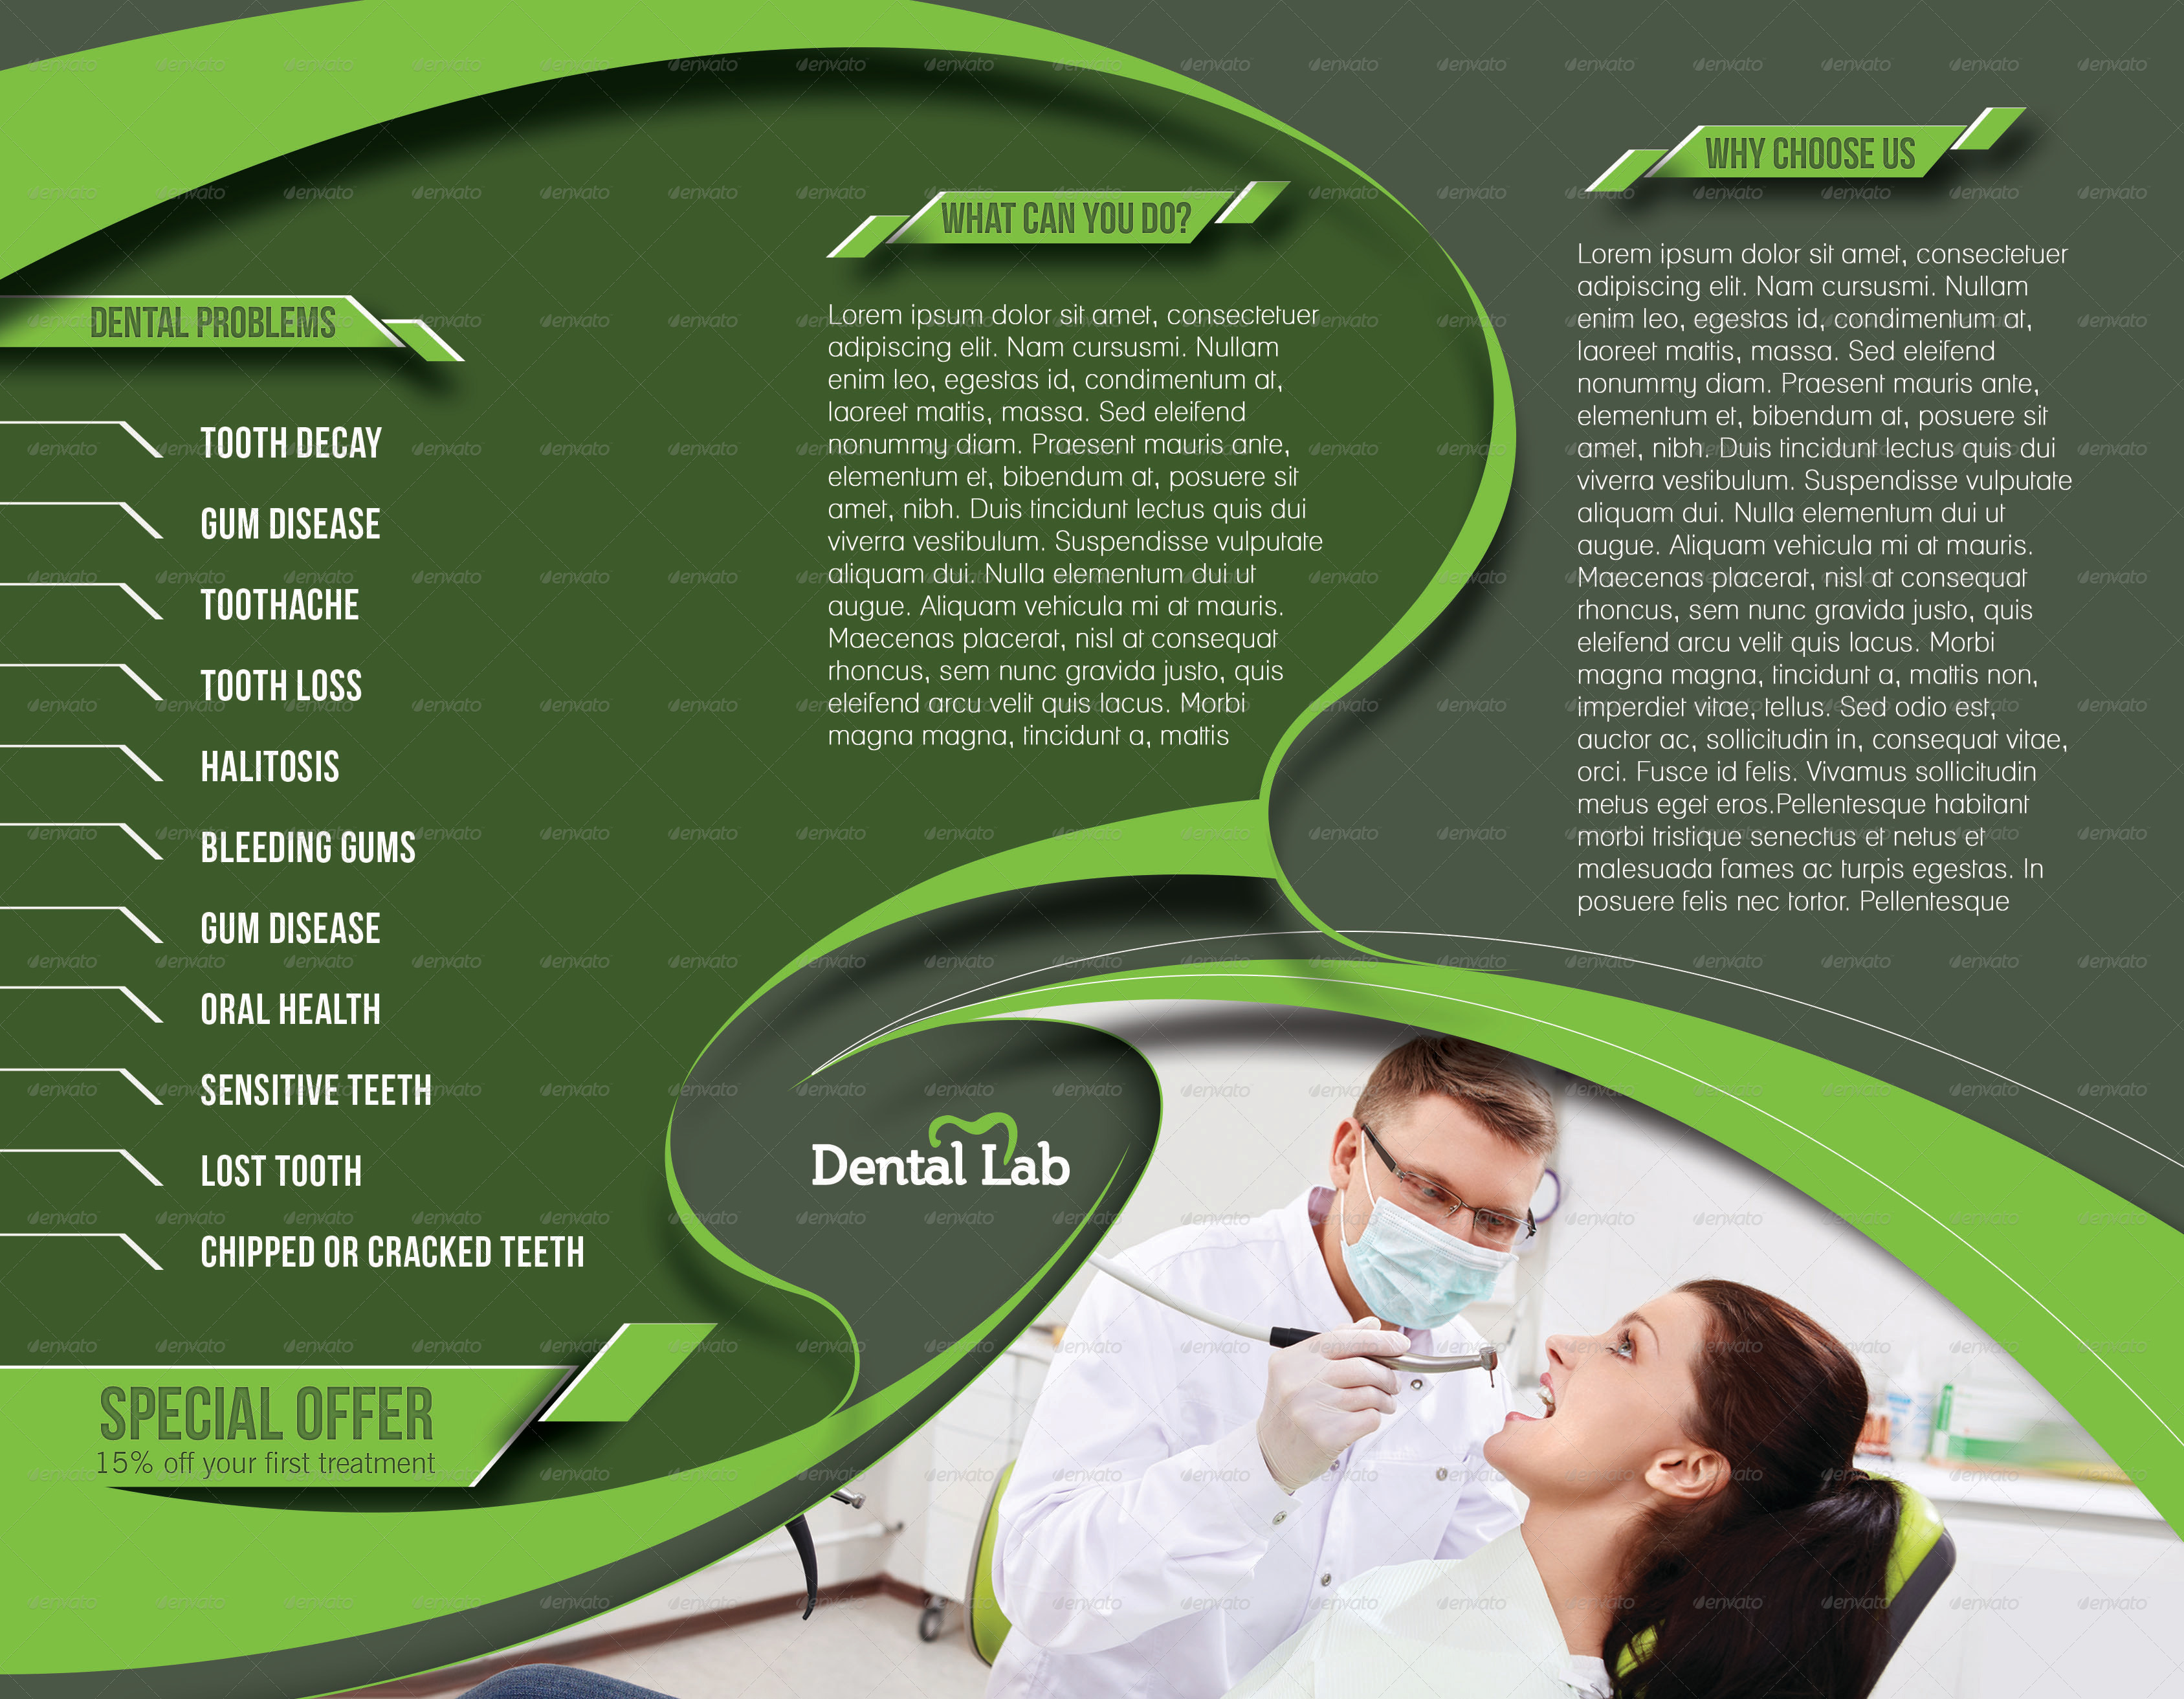 Dental Trifold Brochure Template By Redshinestudio GraphicRiver - Dental brochure template